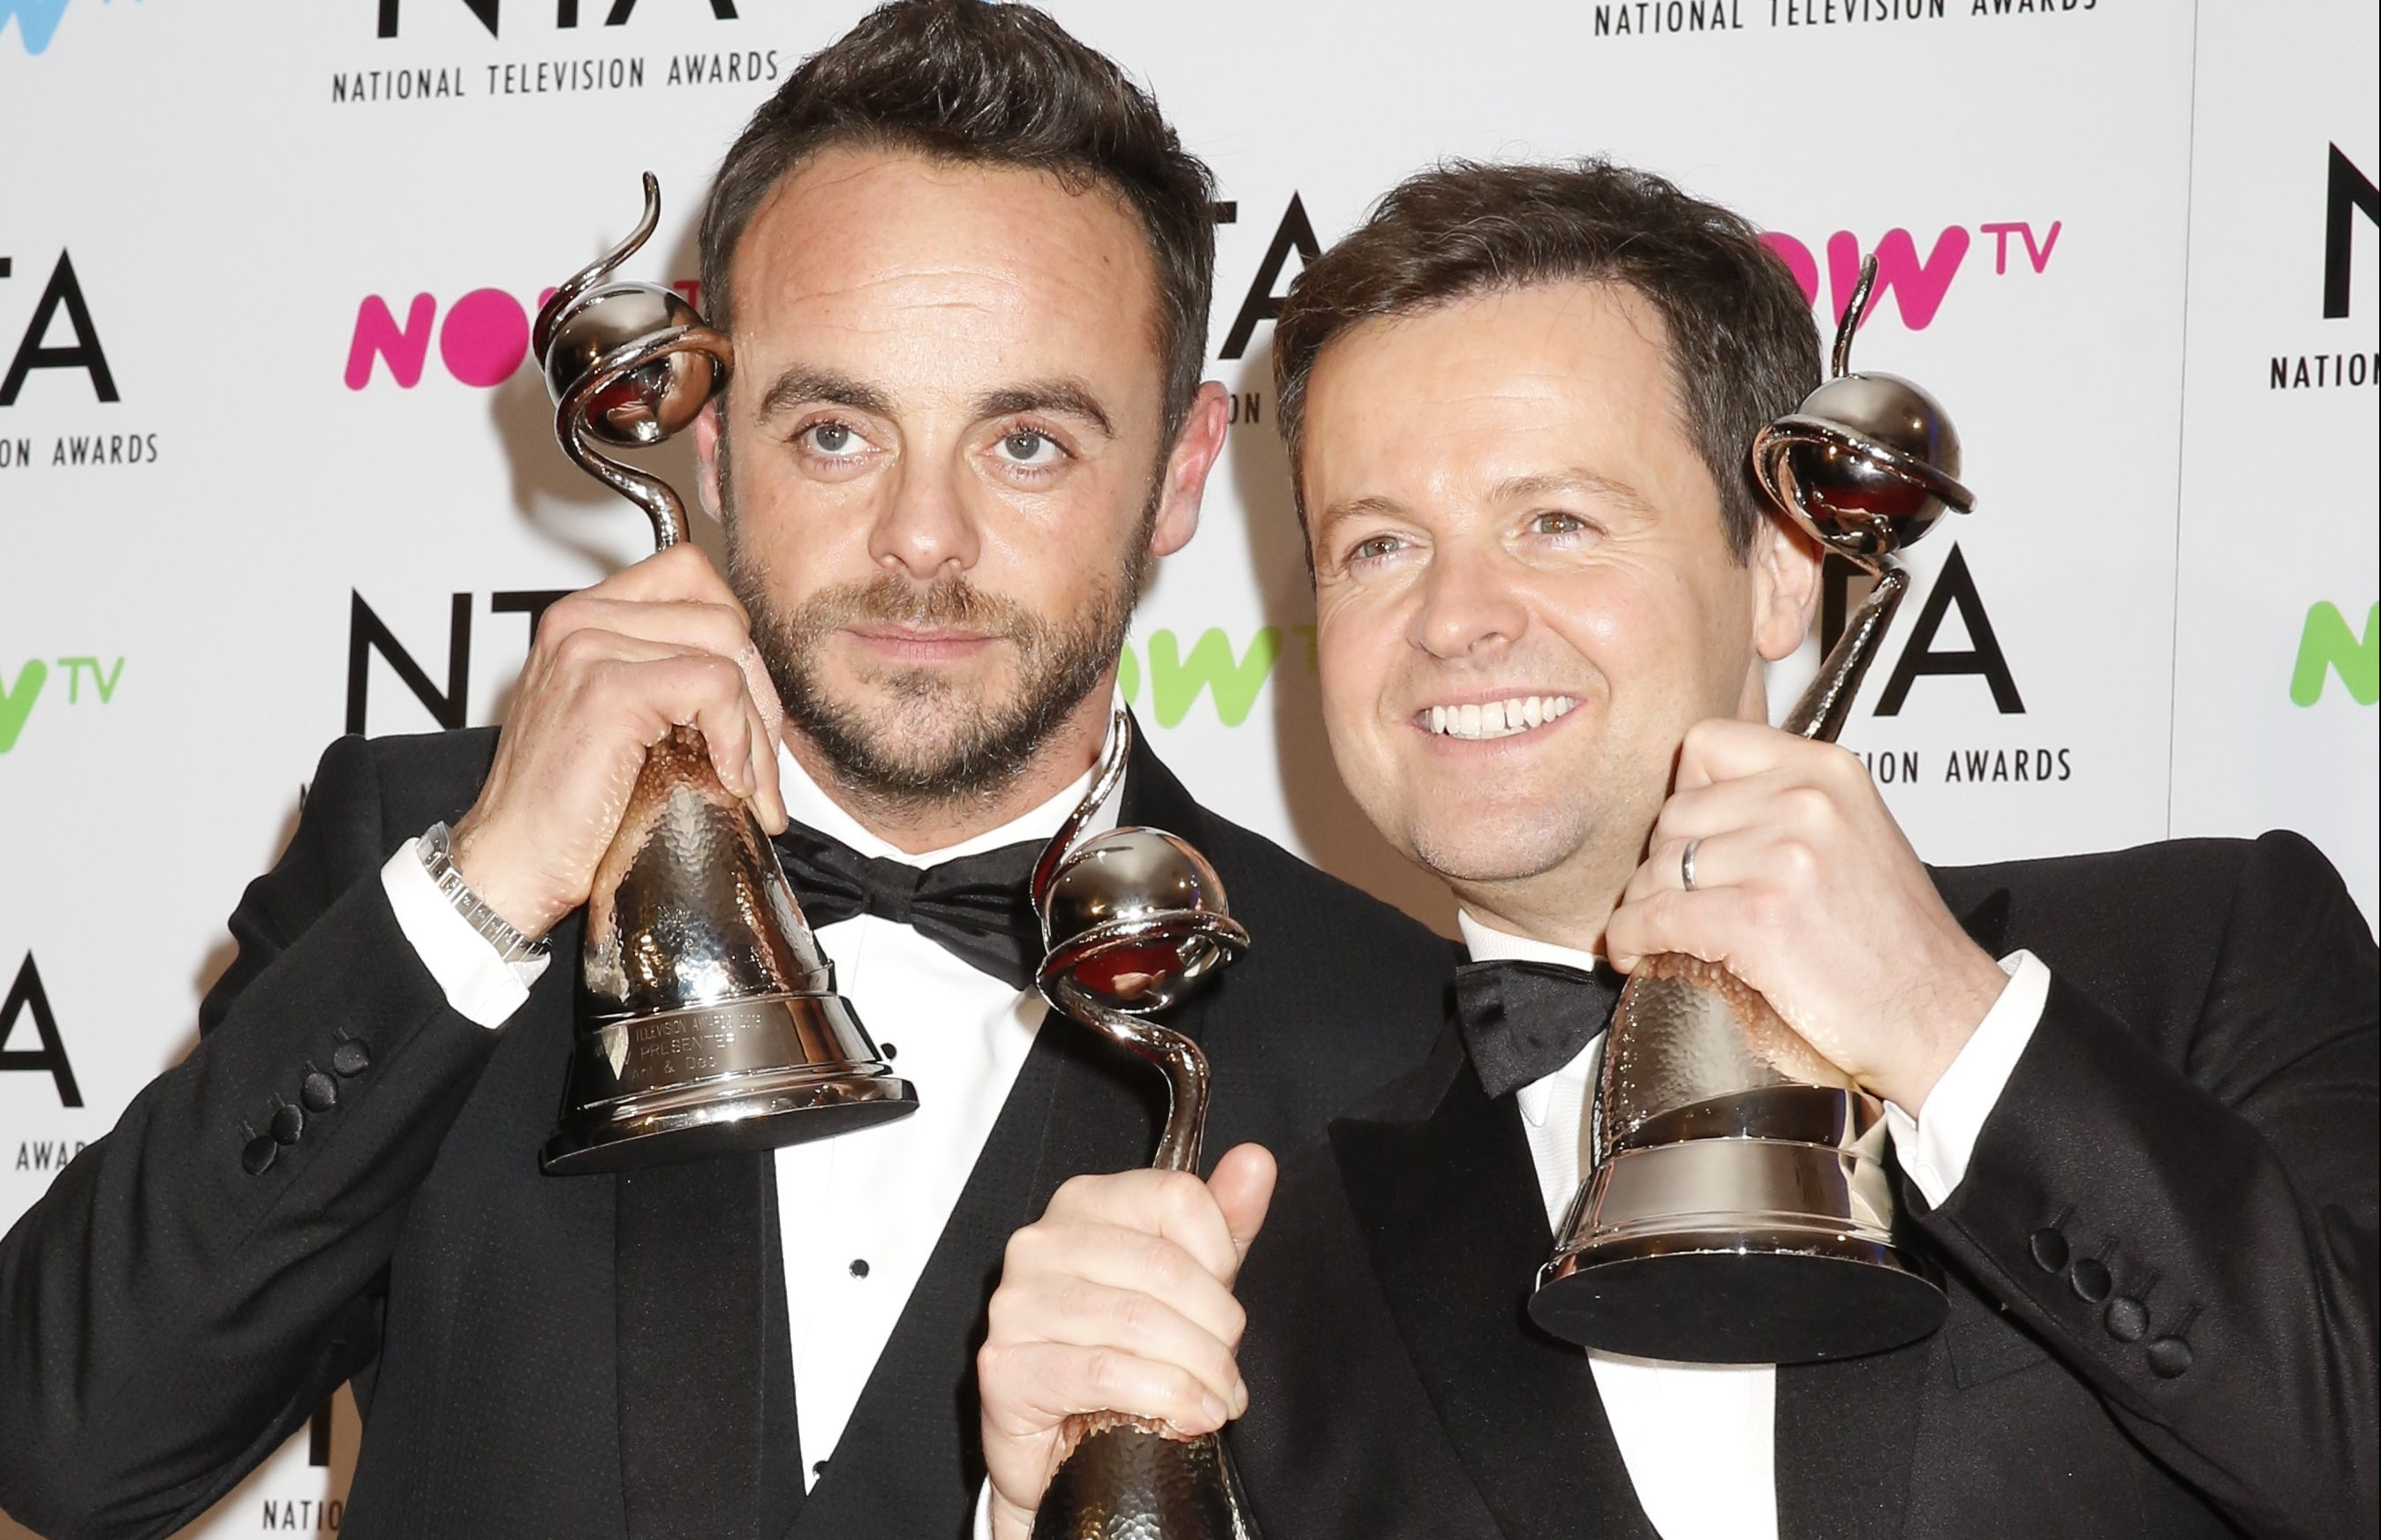 Ant and Dec win big at National Television Awards